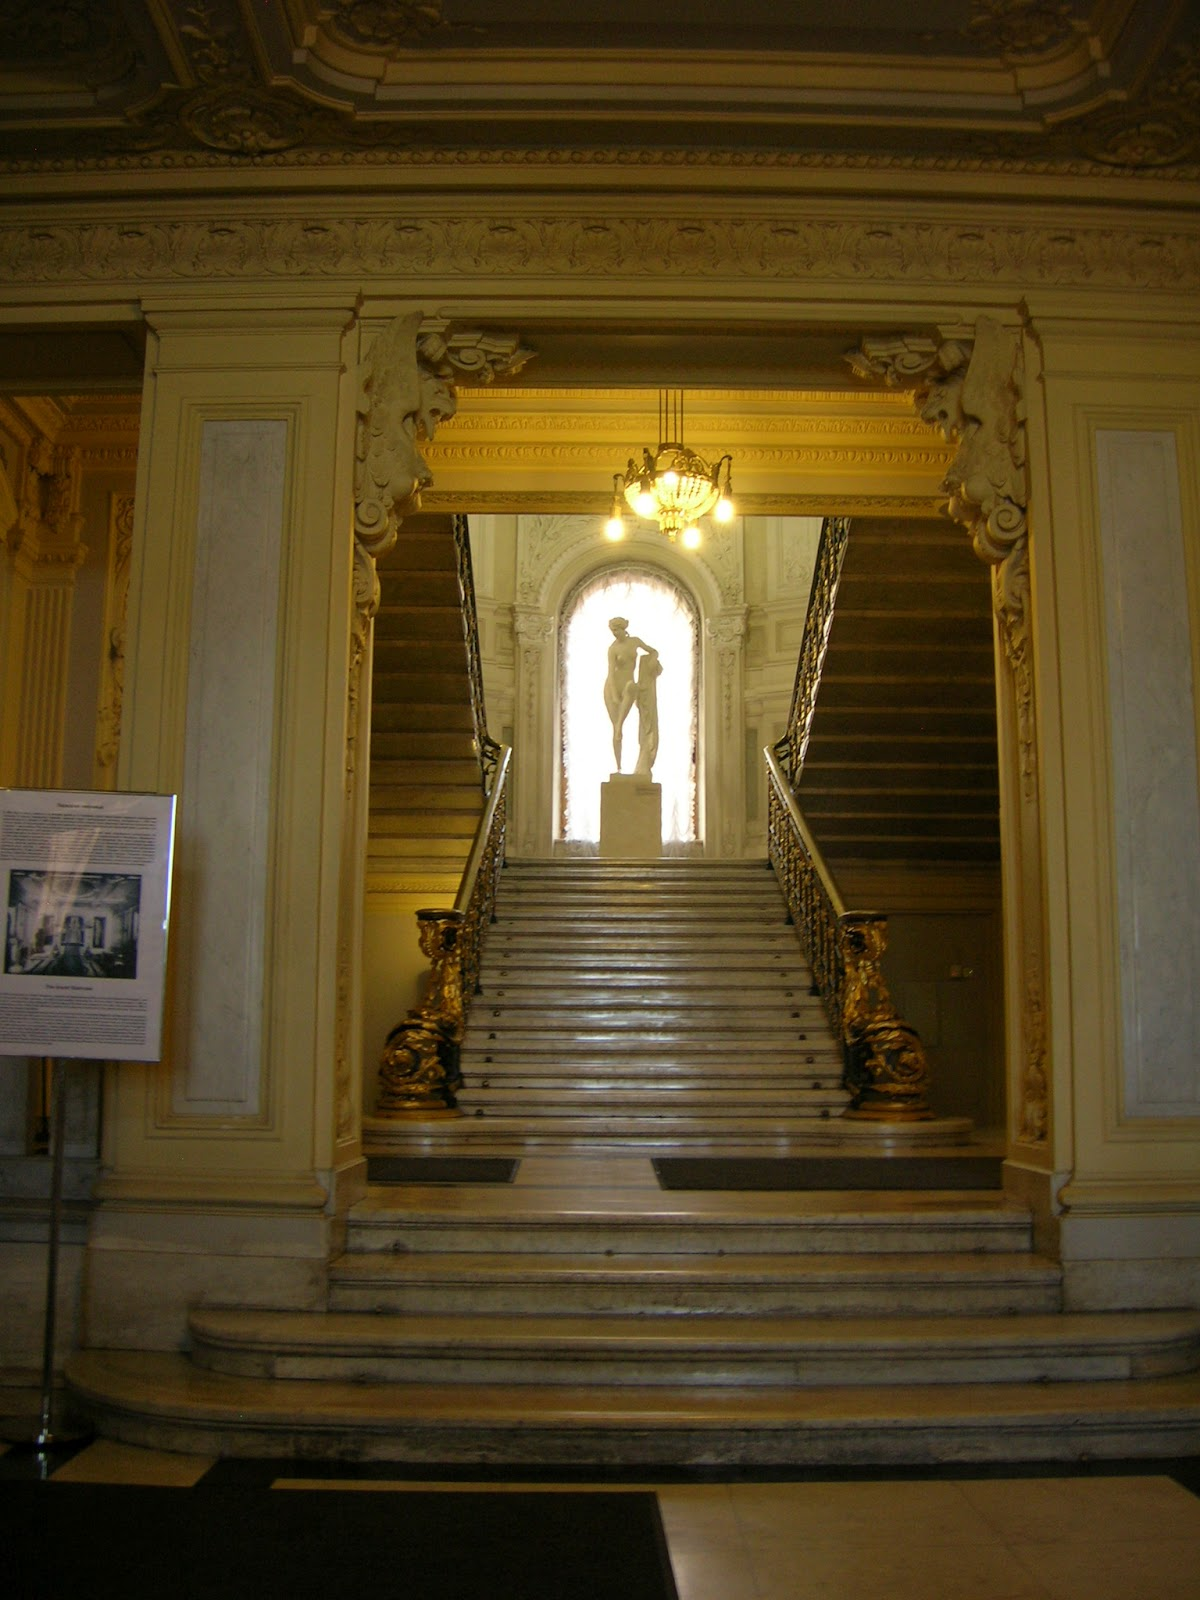 Grand Foyer In English : Abroad in a year of travel sailing the admiralty